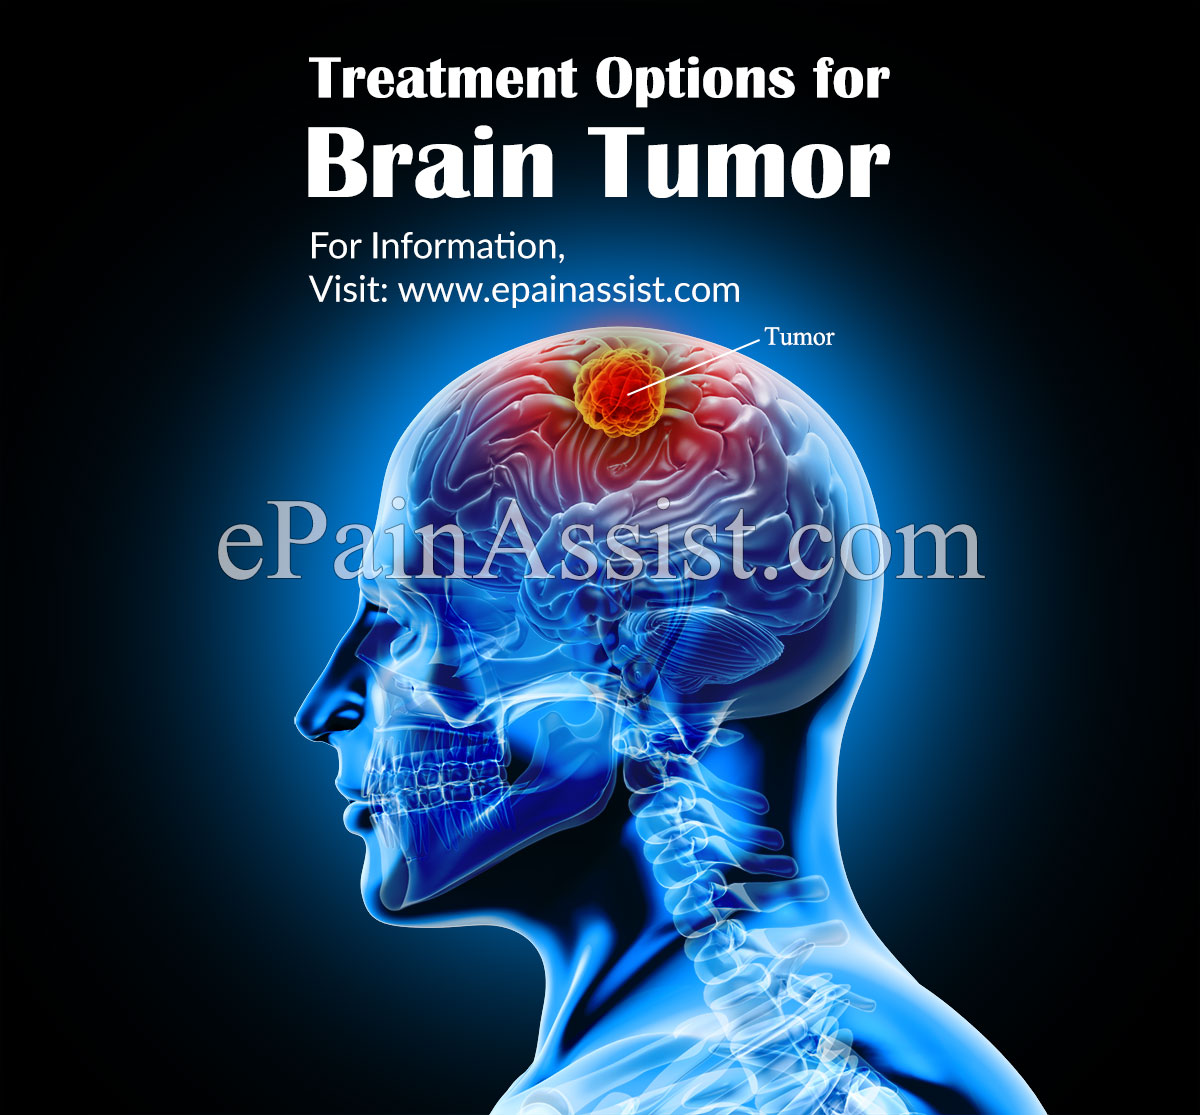 Treatment Options for Brain Tumor